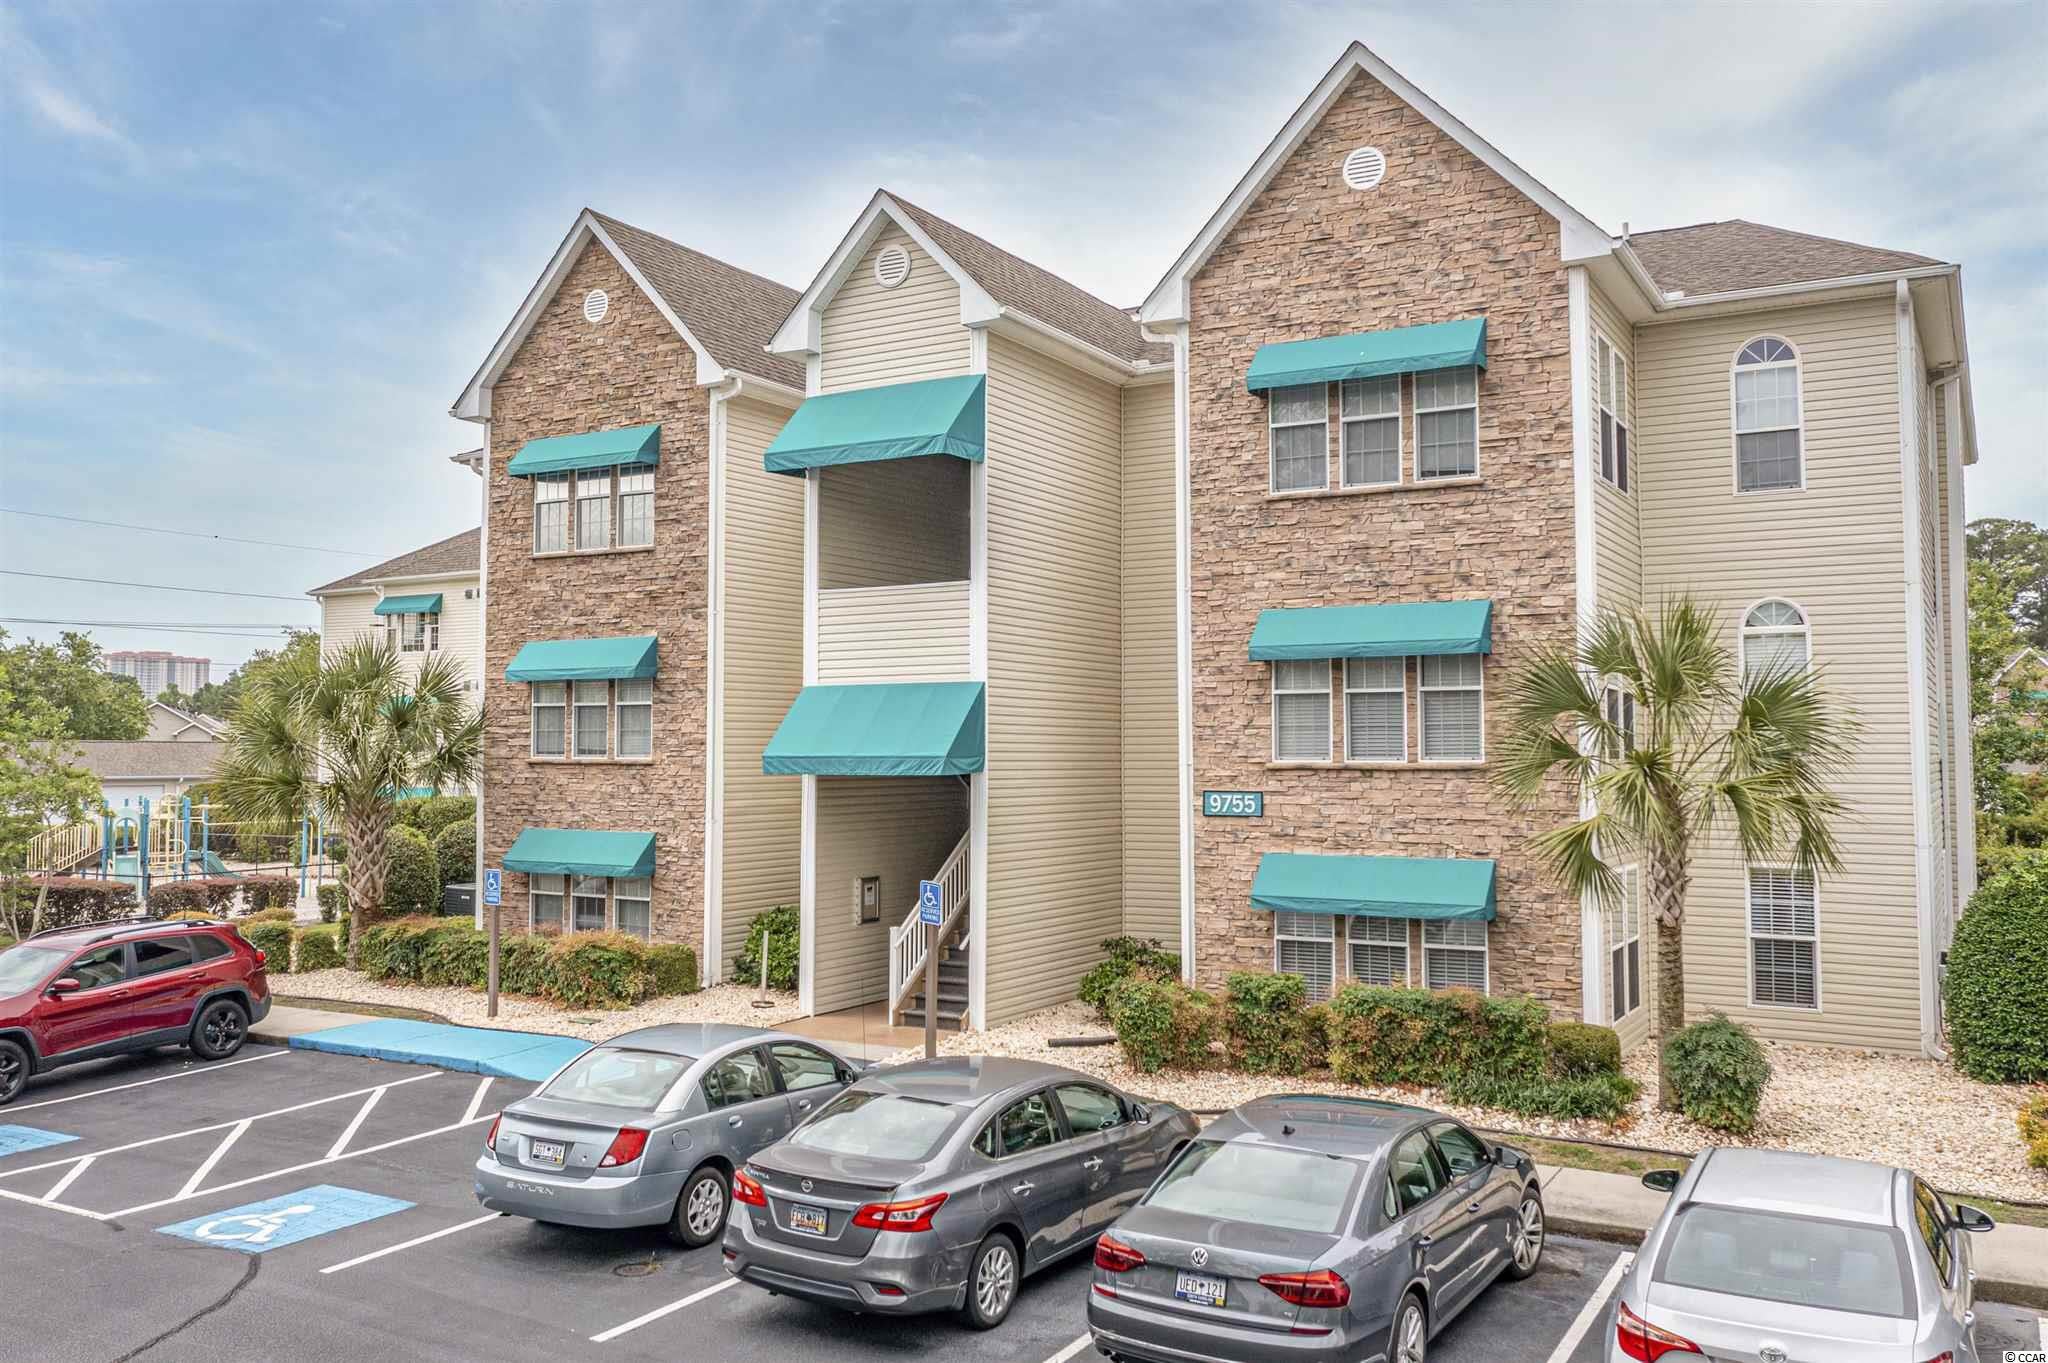 """This is a great opportunity to make this condo your own with a little TLC. This one bedroom and one bathroom condo is being sold """"as-is.""""  A very charming top floor, end unit with a Carolina Room, a fireplace, a wet bar, laundry room with a washer and dryer and a lot of storage. Savannah Shores is a gated community in the Arcadian section of Myrtle Beach. This community offers great amenities with an outdoor pool, putting greens, a playground, tennis courts and a clubhouse. Only a golf cart ride to the beach and close to Tanger Outlets, Myrtle Beach Mall and many other great shops and restaurants. Schedule a time to see this condo for your place at the beach."""